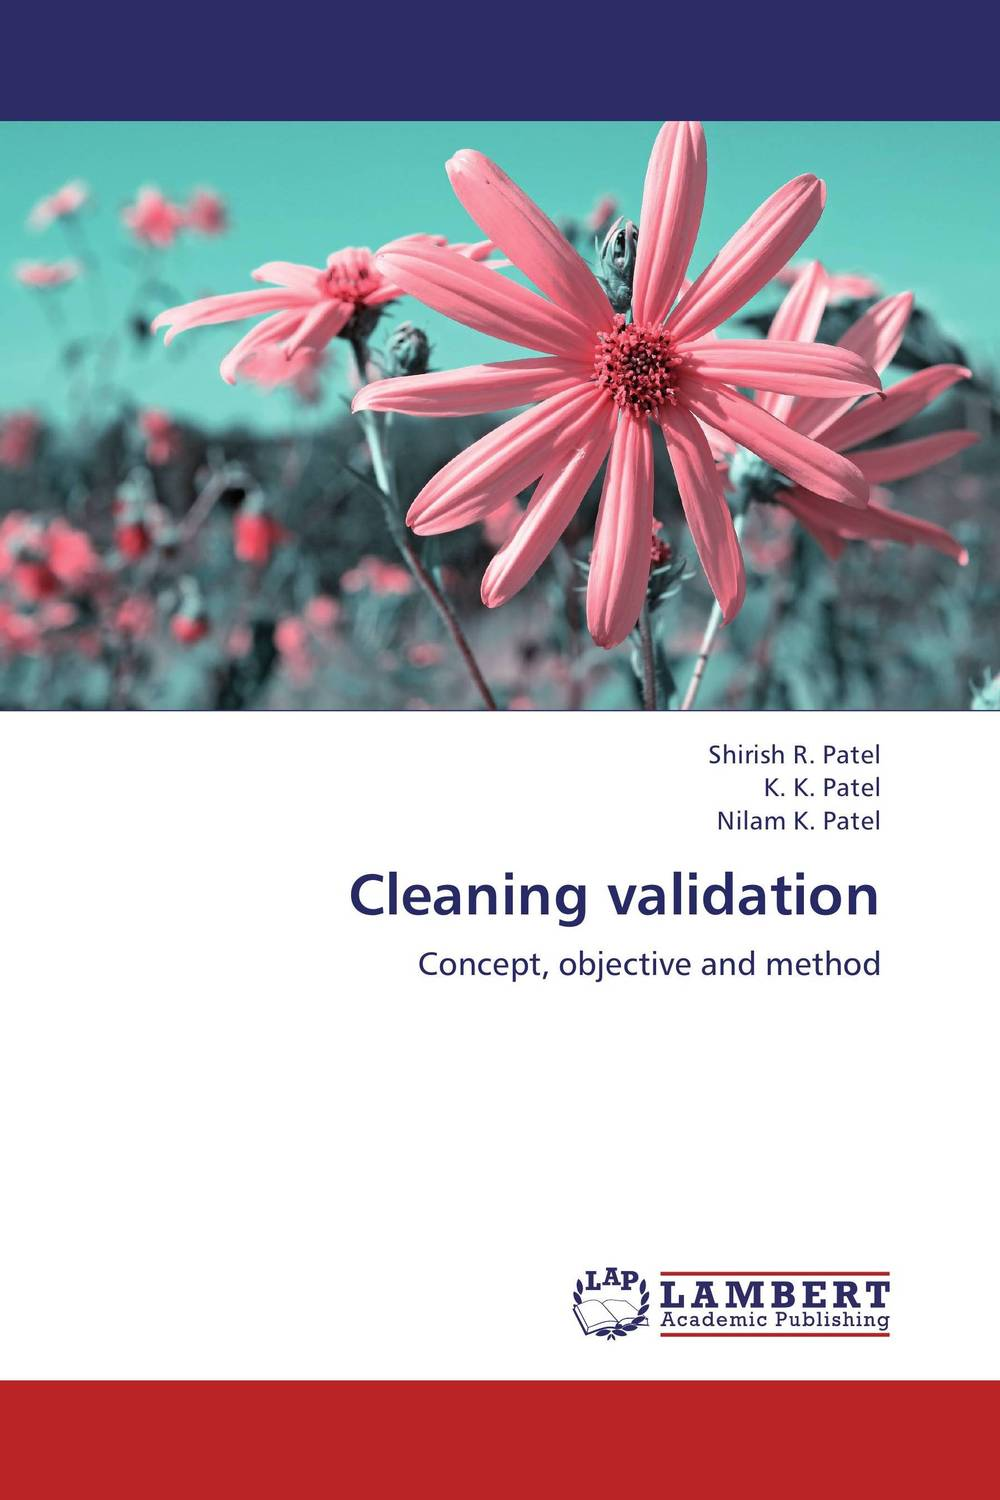 Cleaning validation developments in surface contamination and cleaning methods for removal of particle contaminants